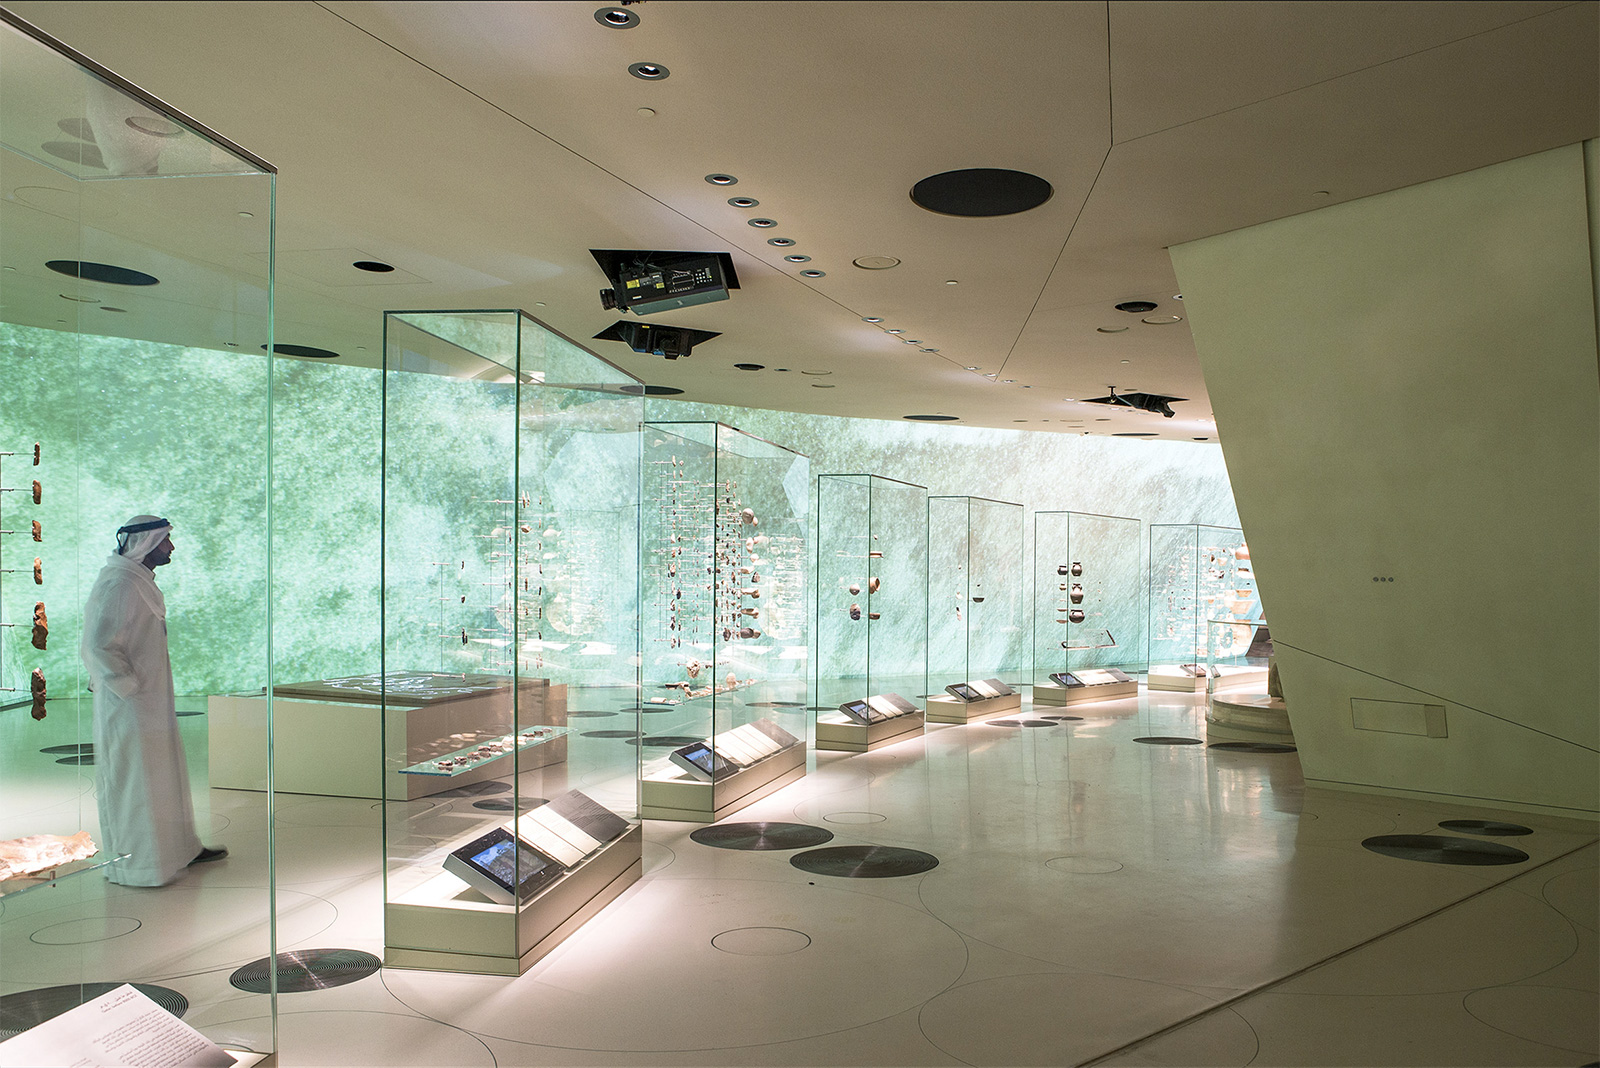 National Museum of Qatar opened on 28 March 2019